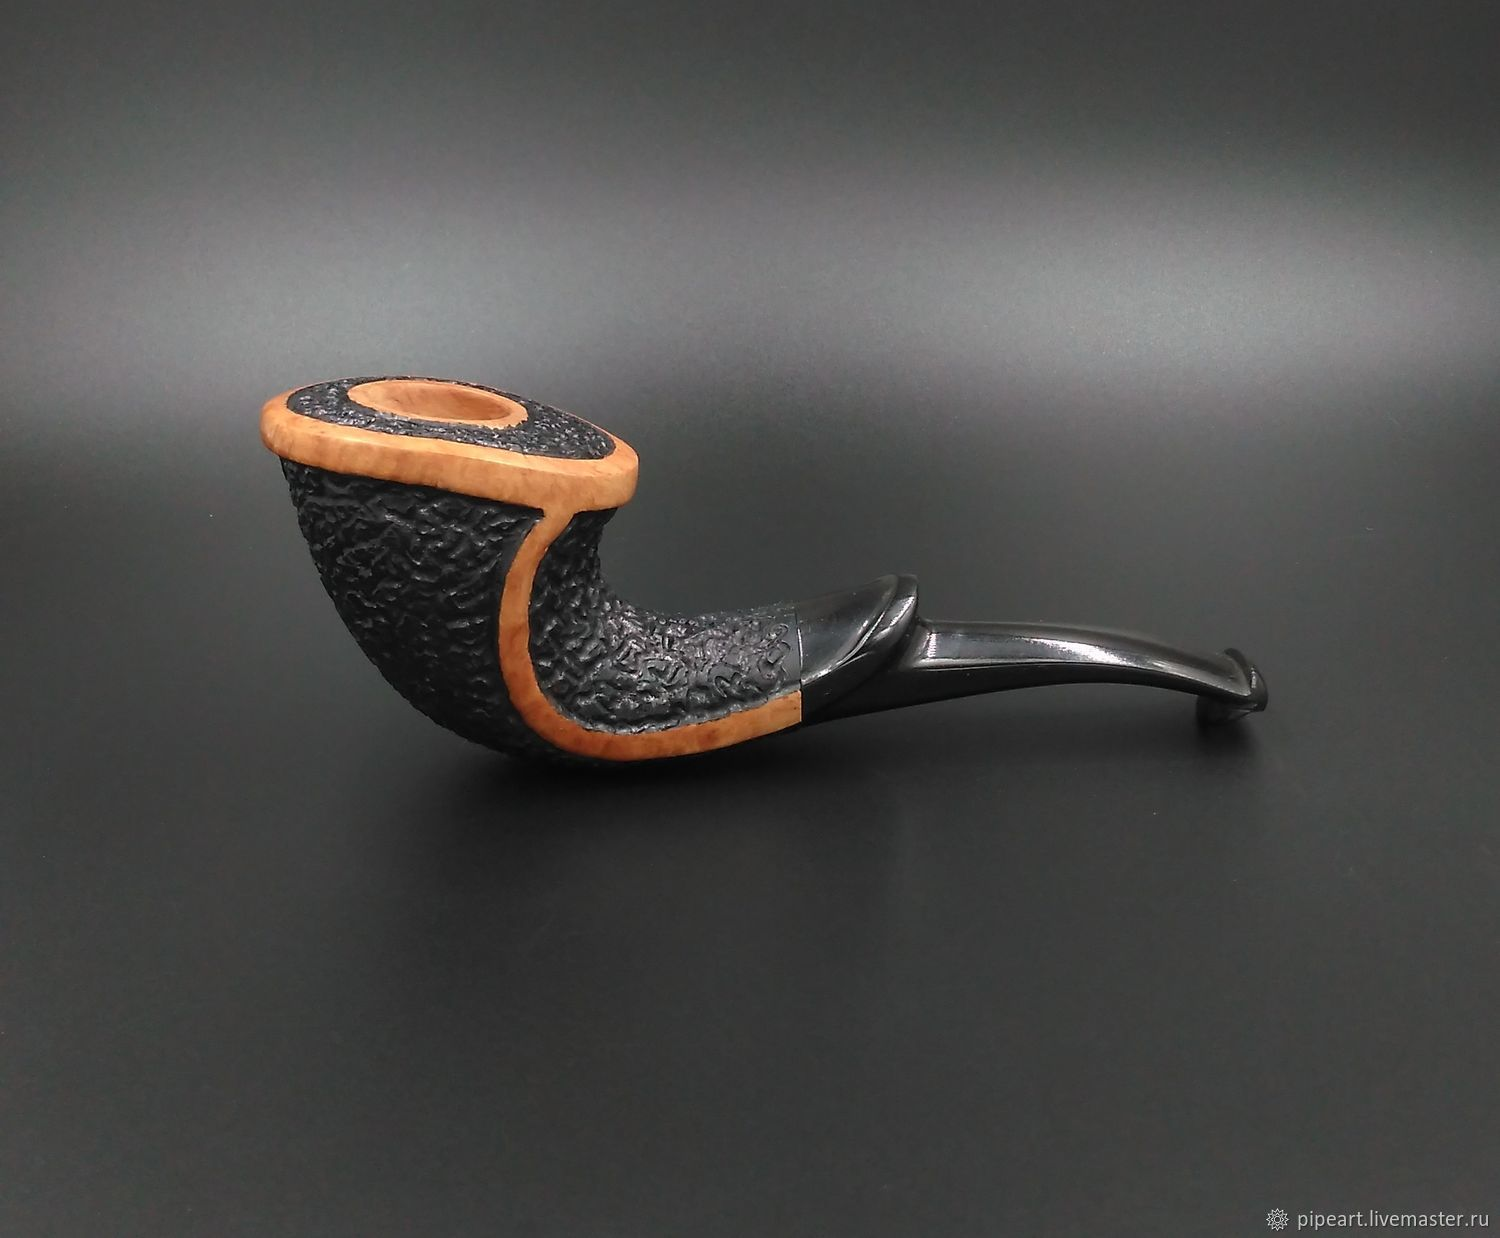 Smoking pipe 5-06, Tobacco pipe, Moscow,  Фото №1